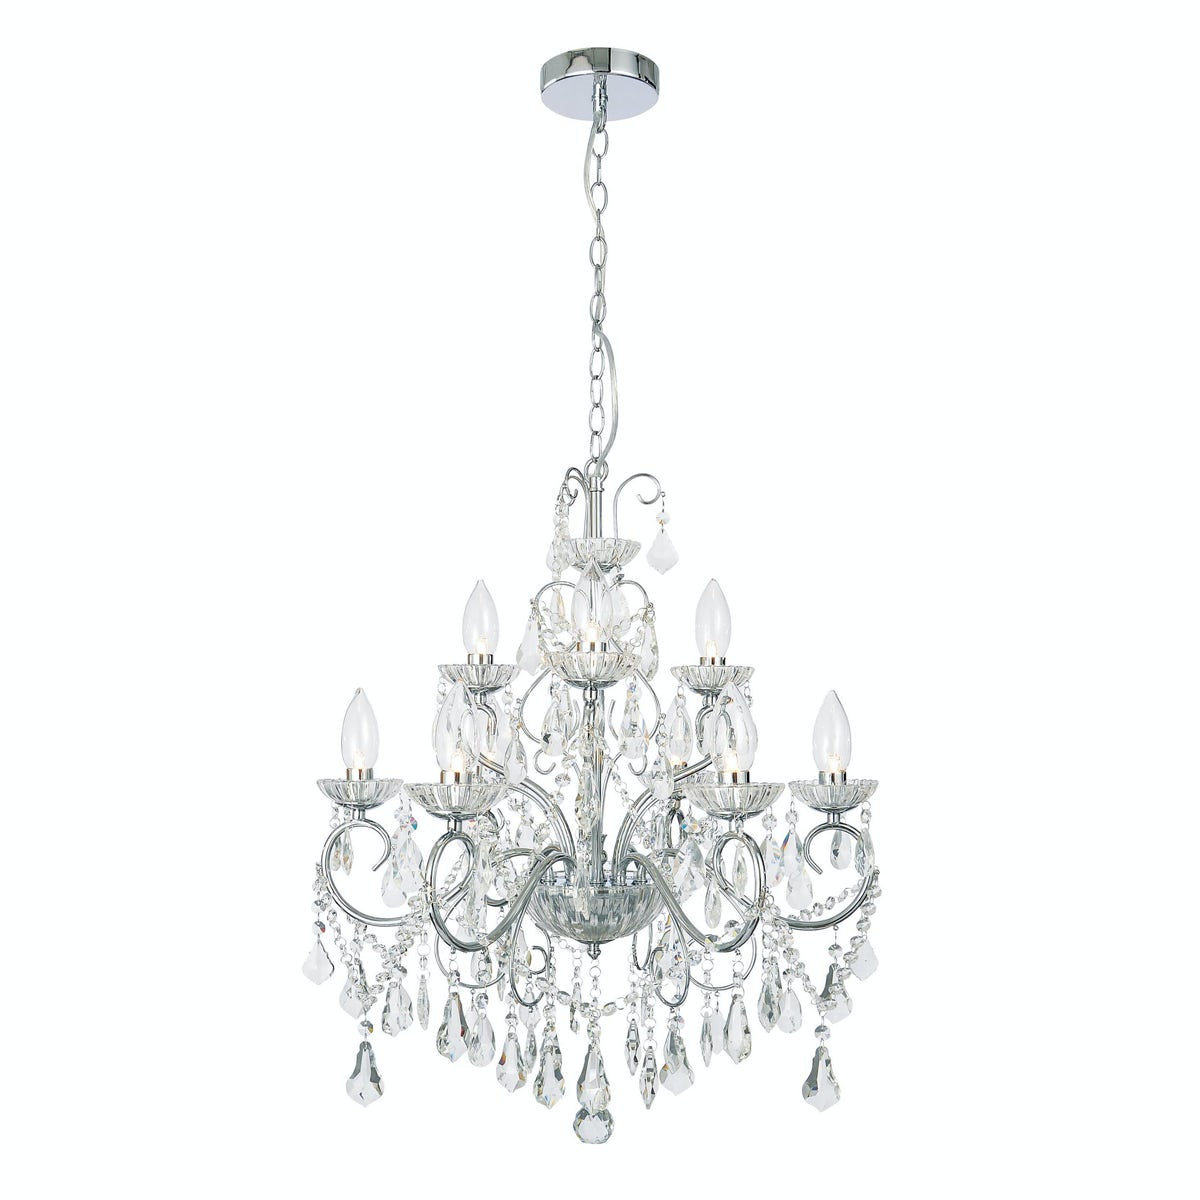 Bathroom Chandelier Lighting Forum Solen 9 Light Bathroom Chandelier